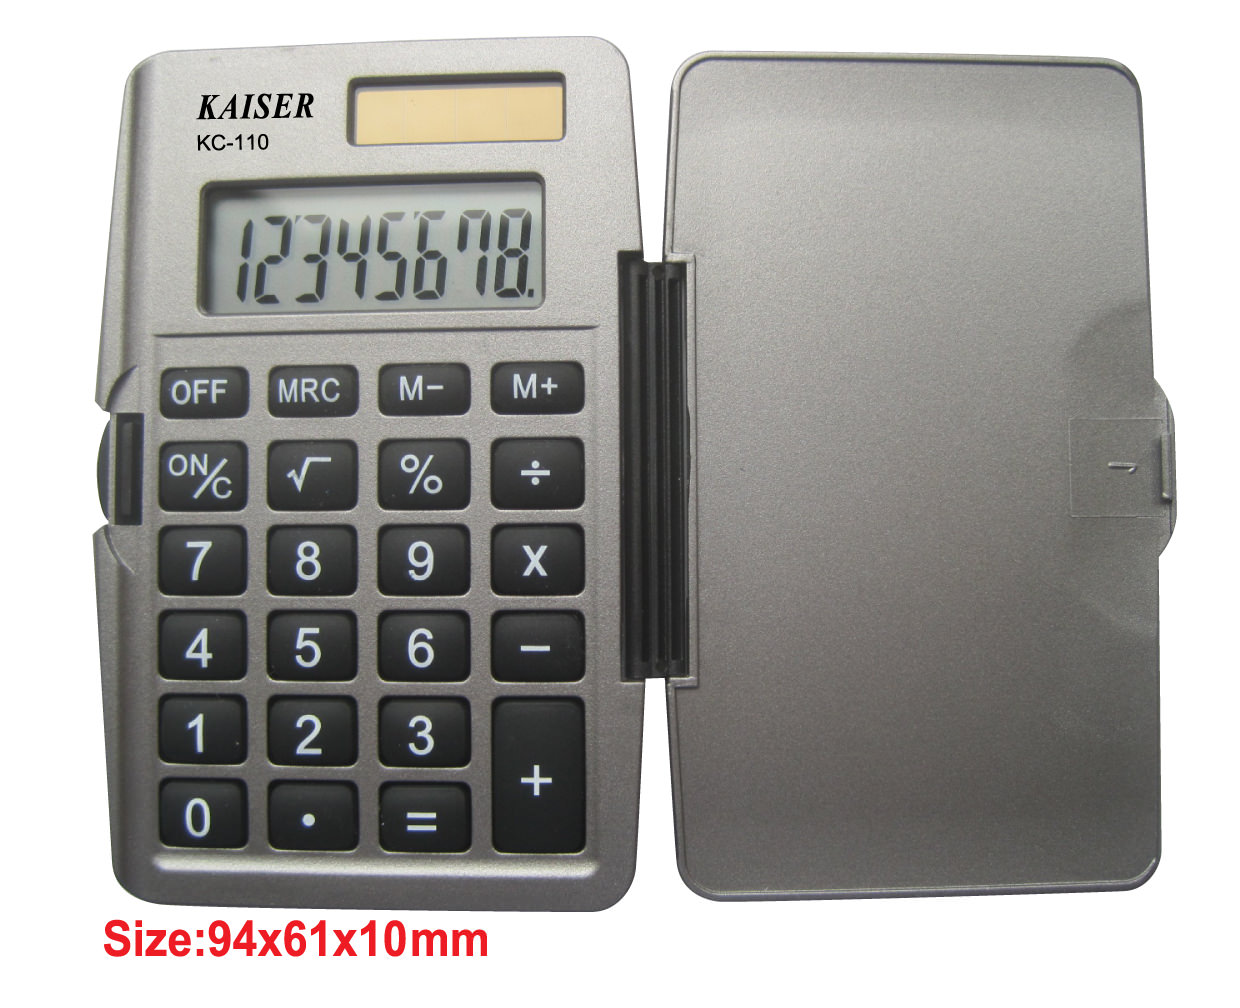 8 digit handy calculator with cover